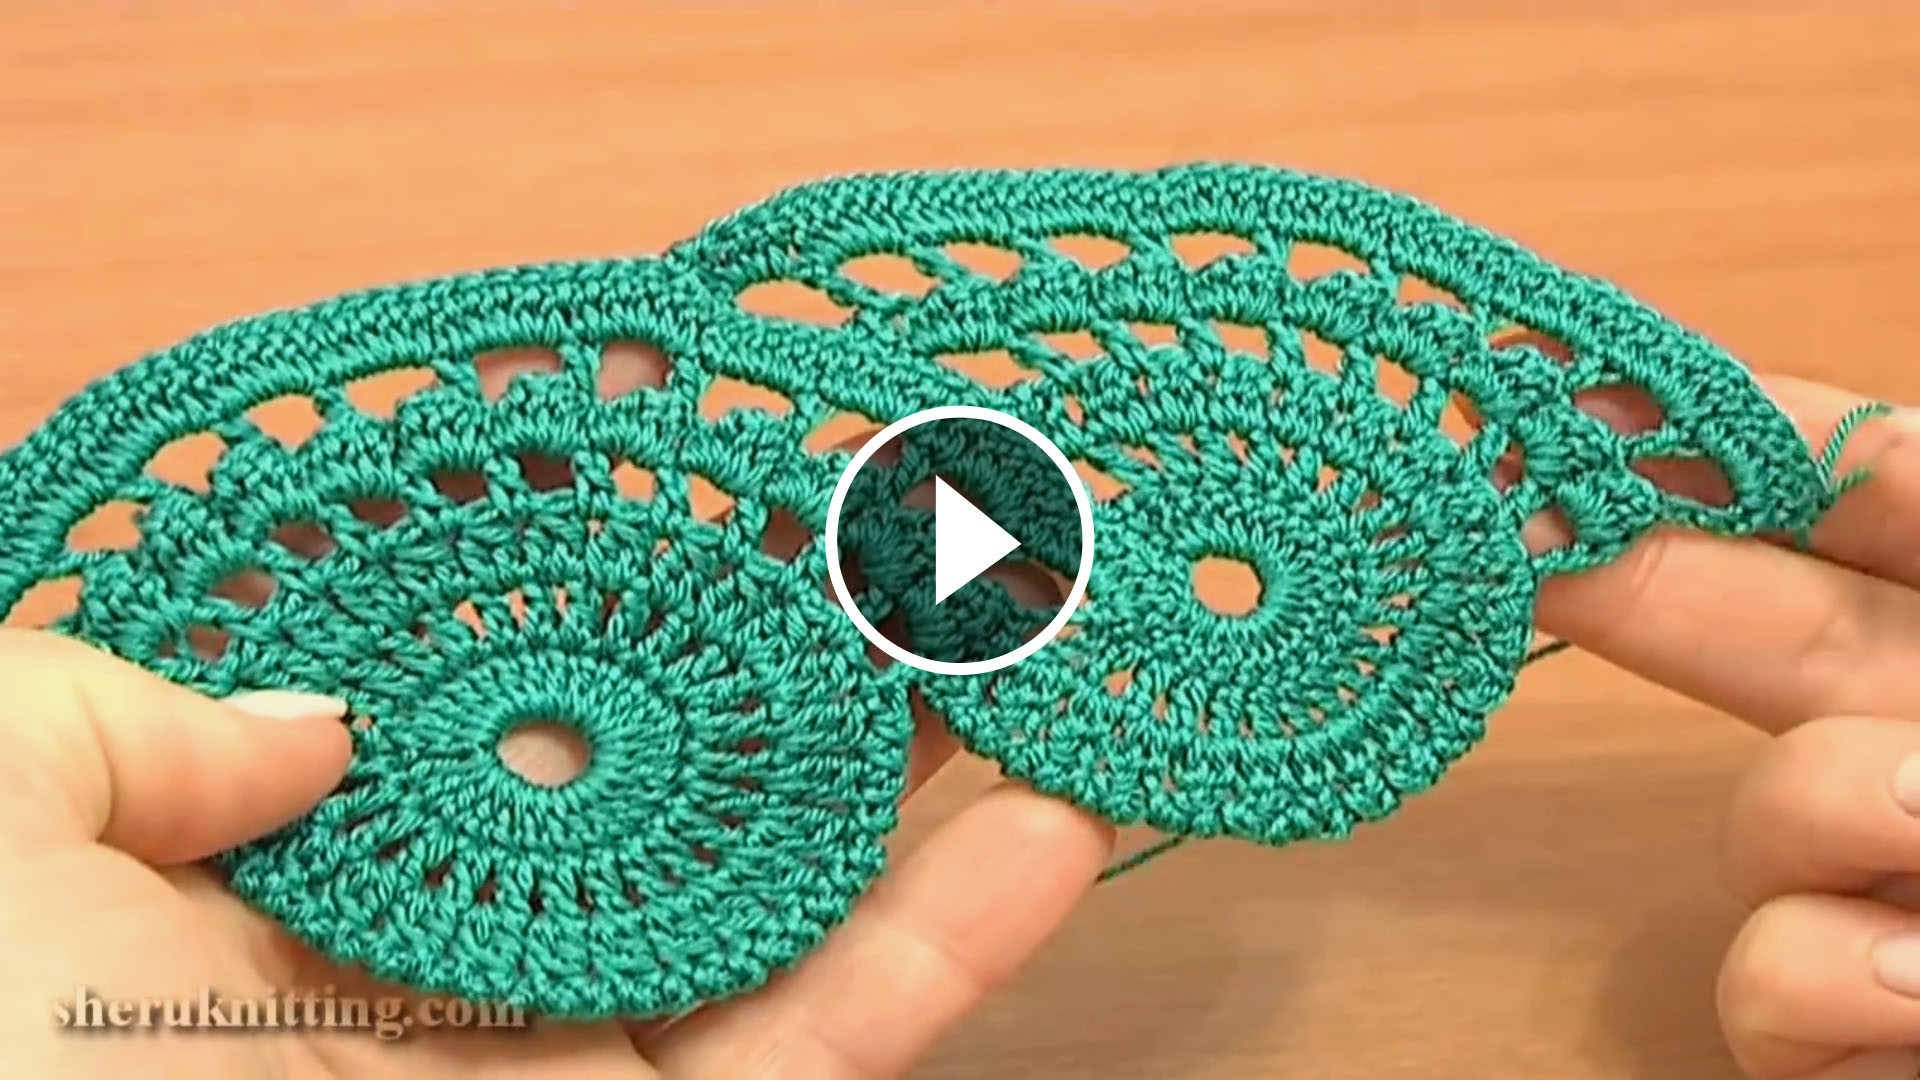 Lace Crochet Free Pattern And Tutorial